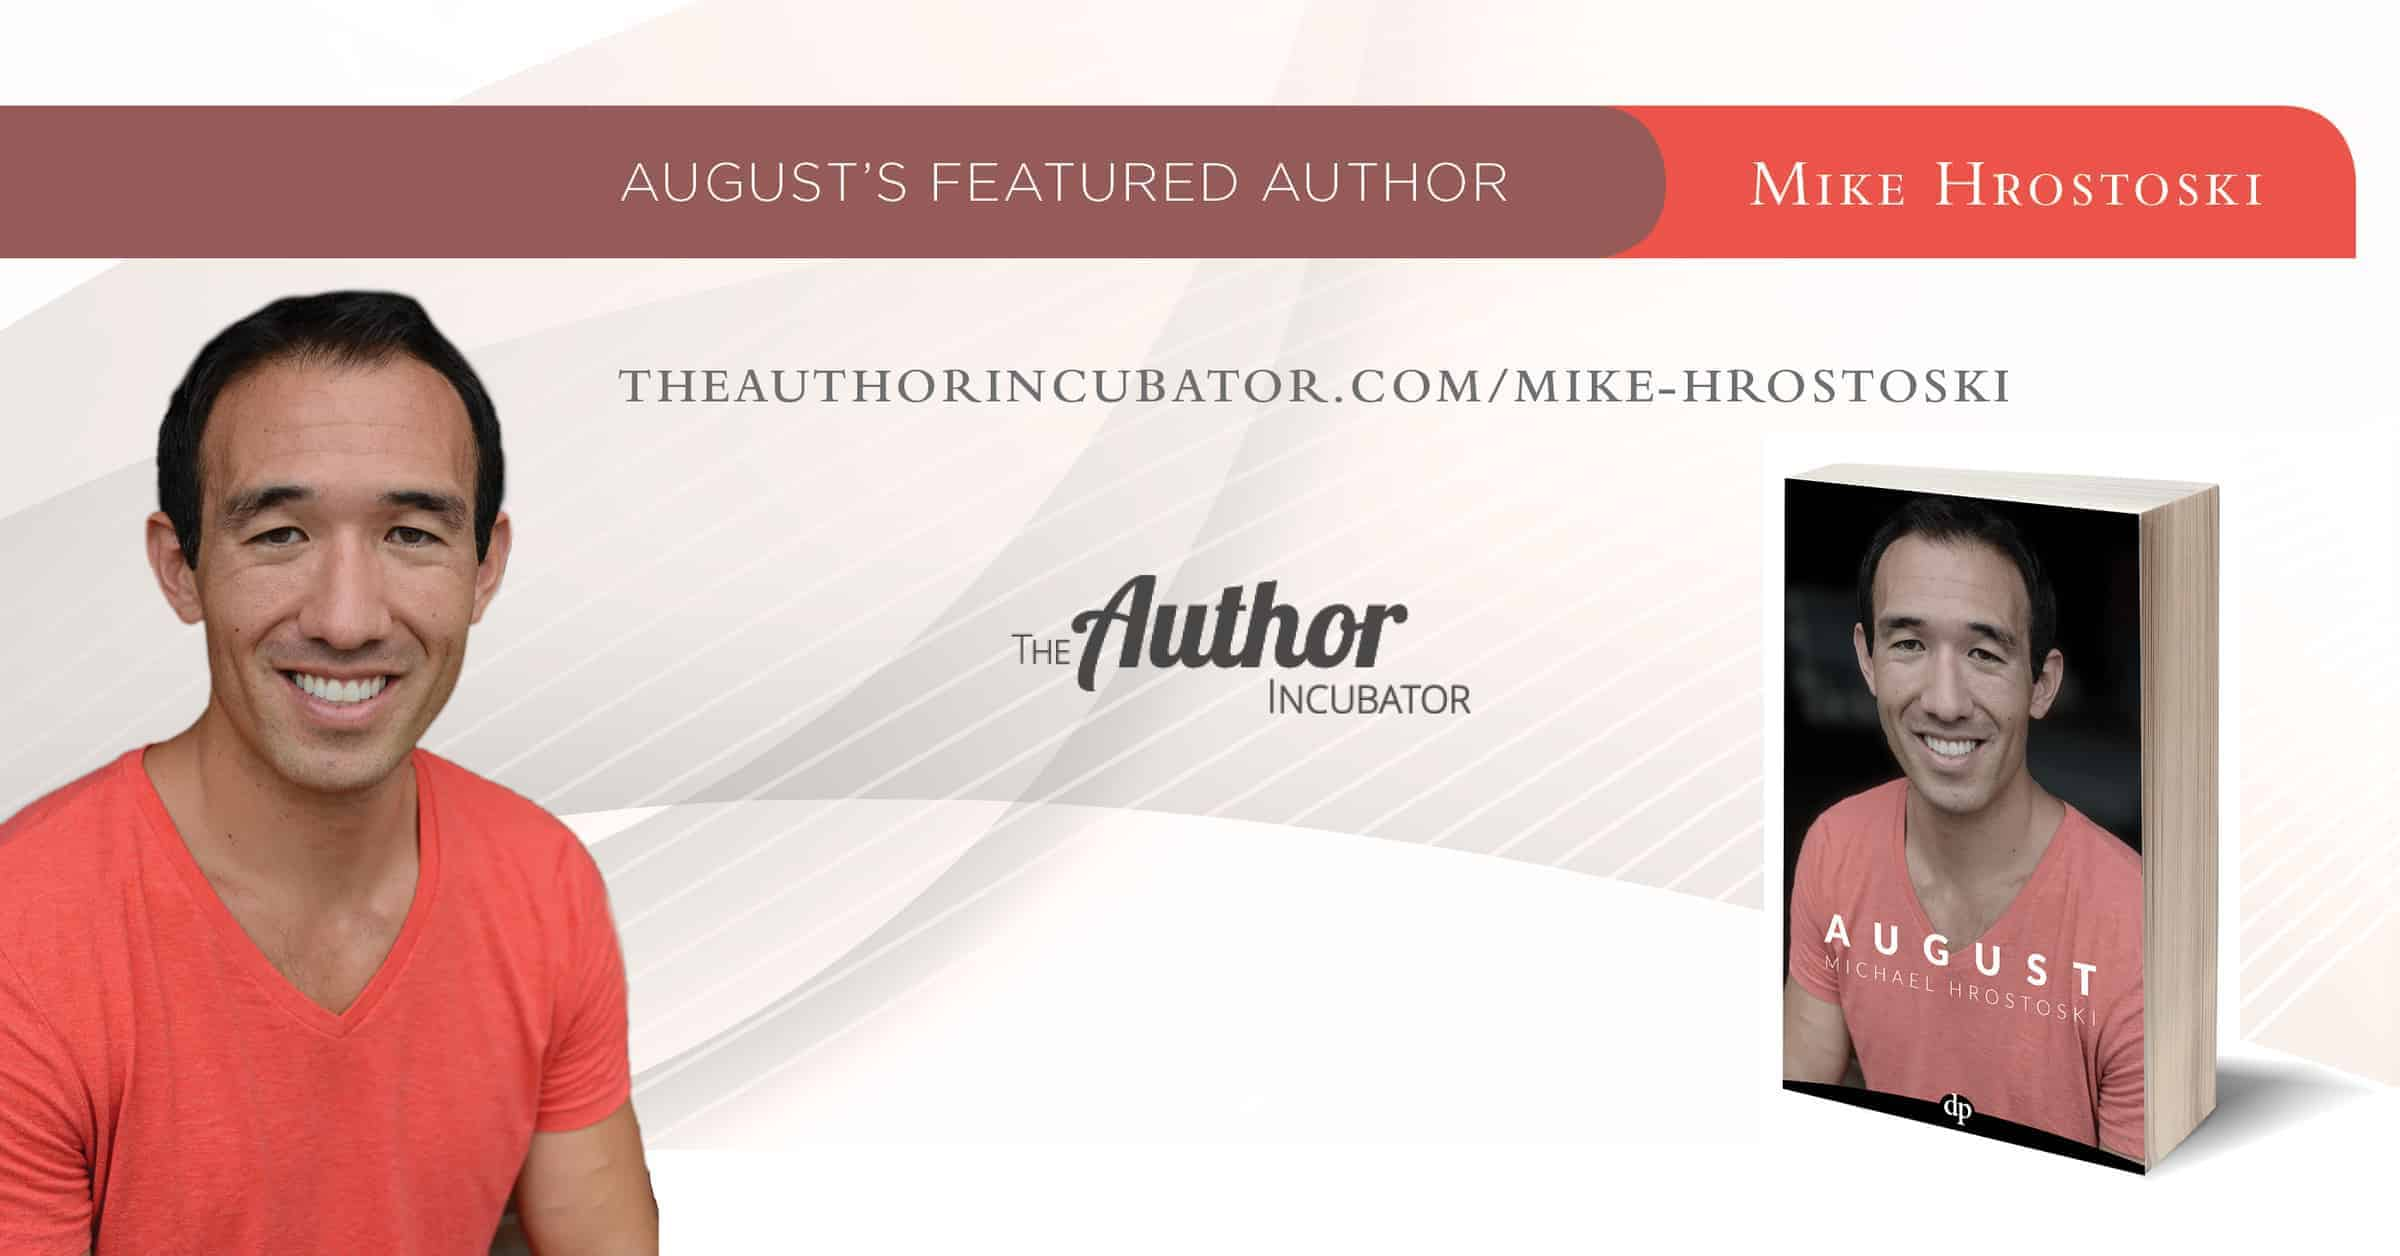 MikeHrostoski_AuthorMonthAug16_1200x628